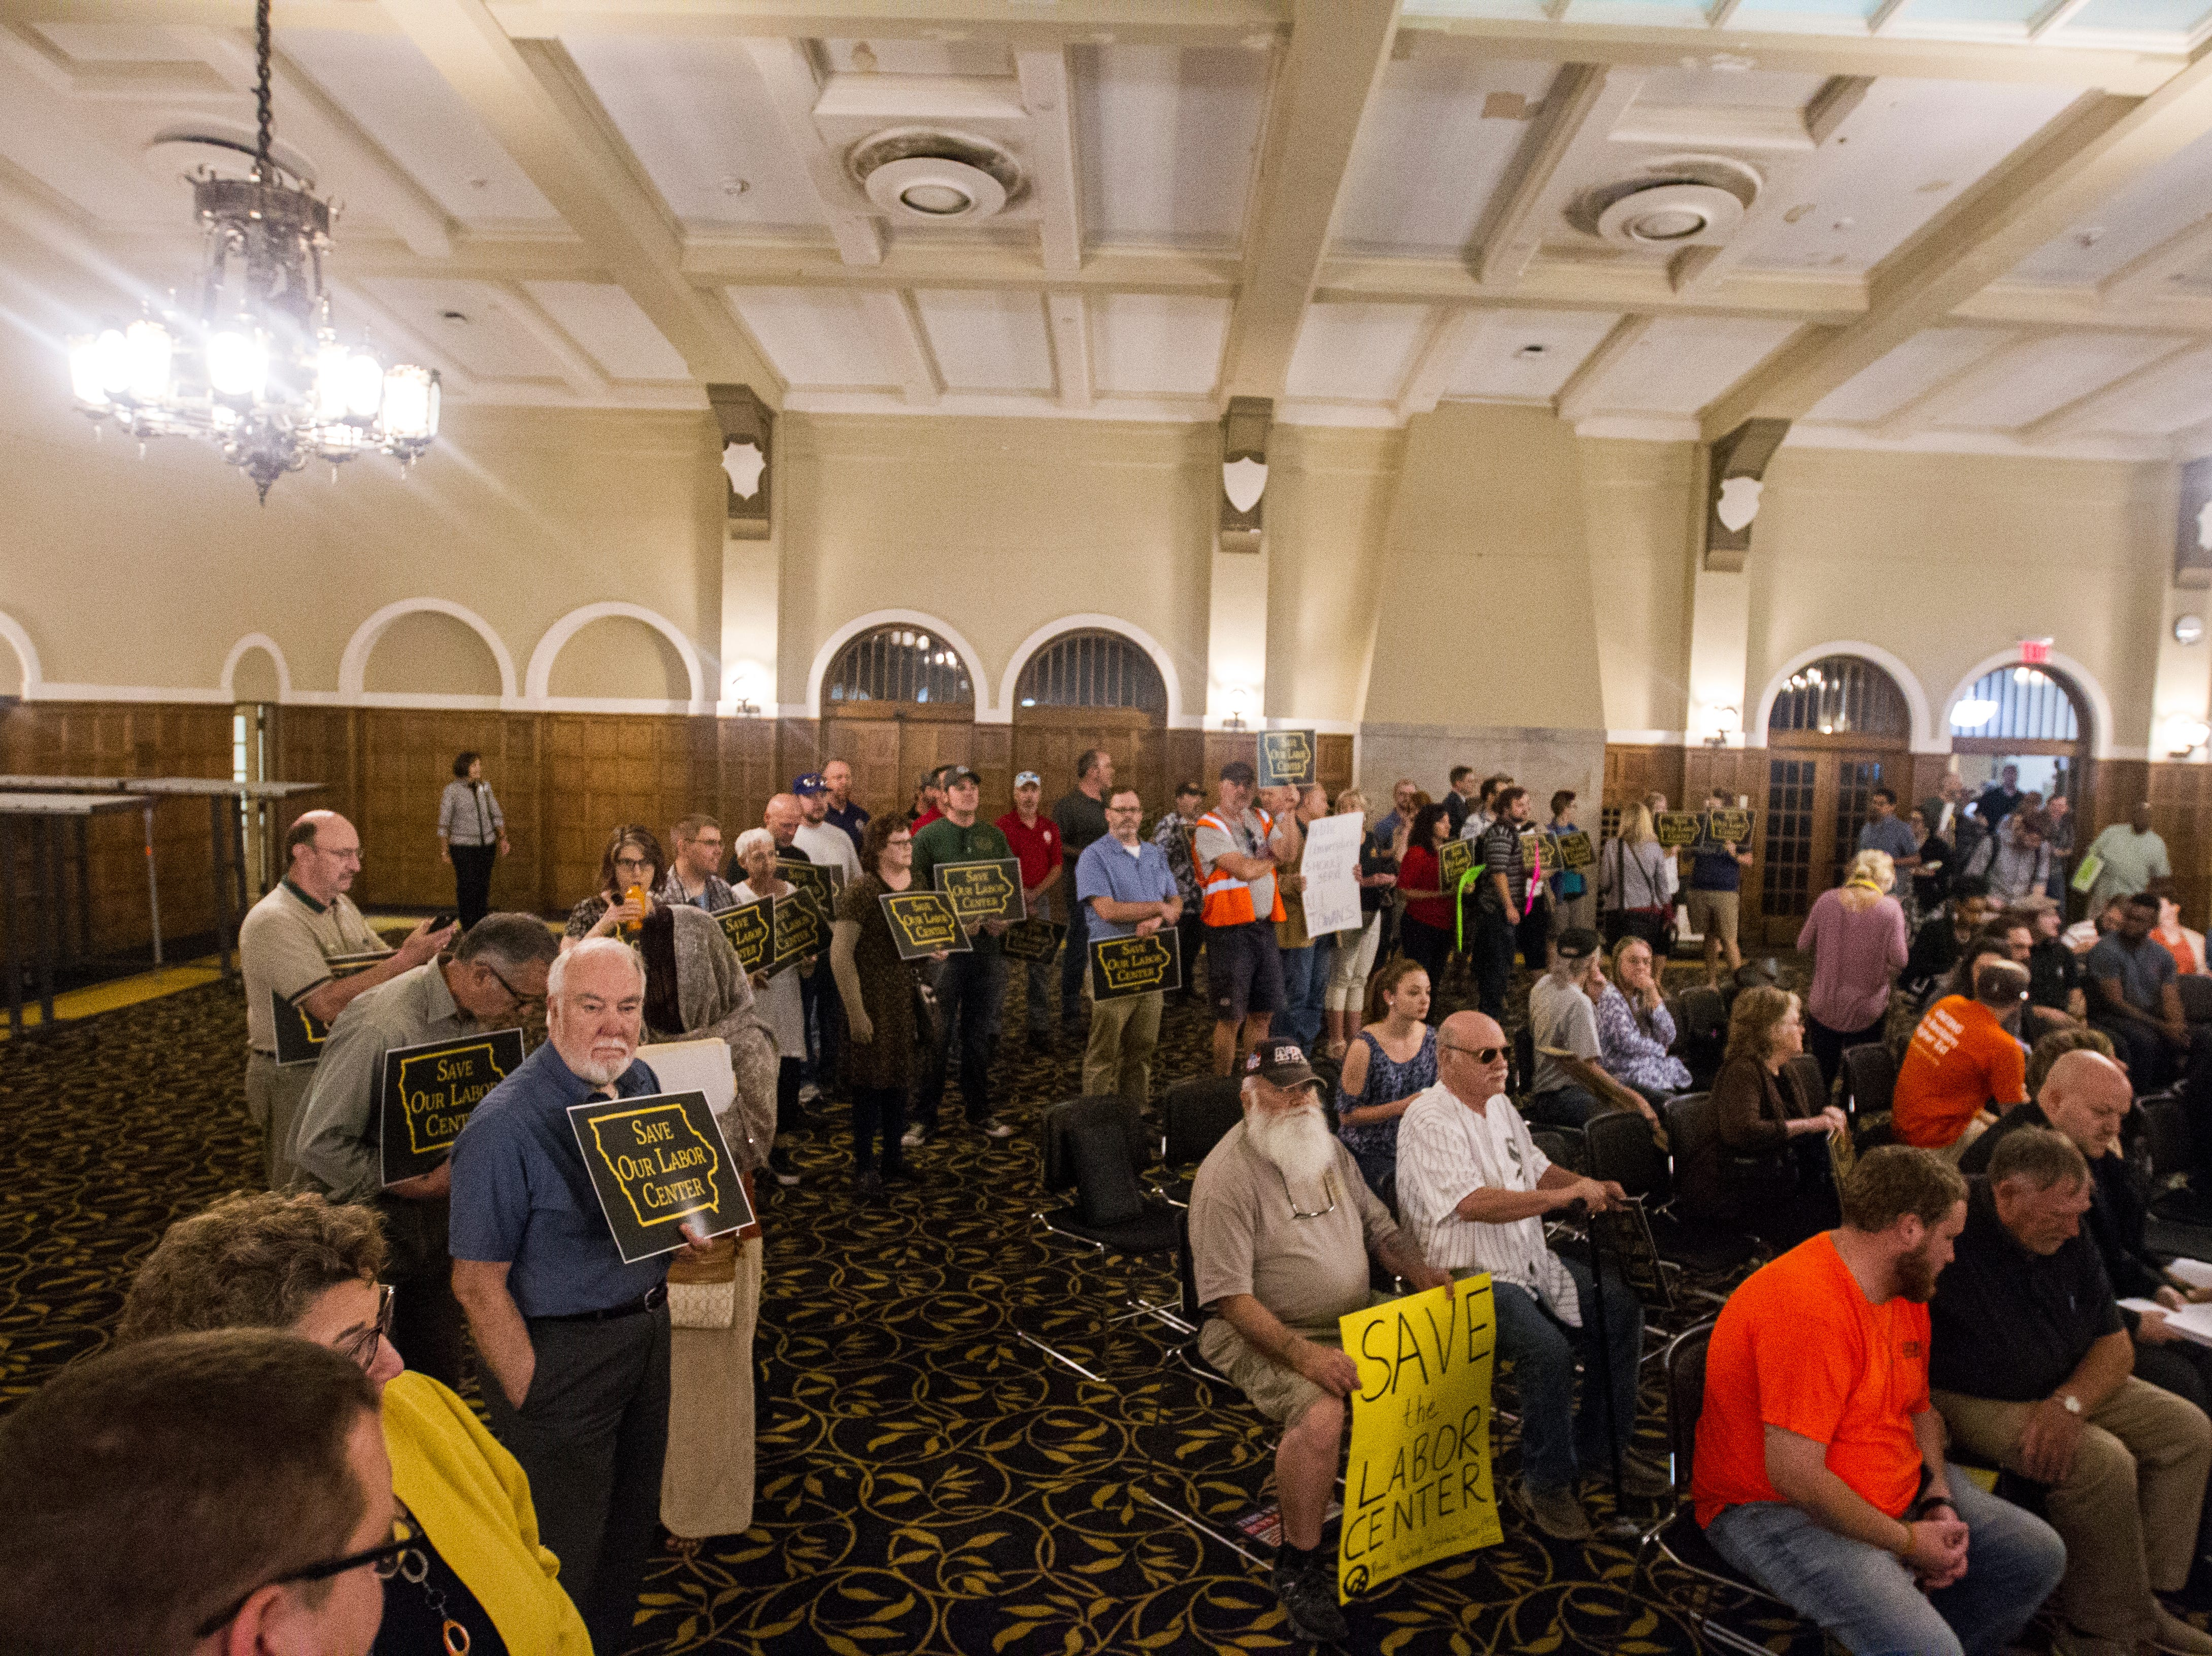 """""""Save Our Labor Center"""" coalition supporters gather during an Iowa Board of Regents meeting on Thursday, Sept. 13, 2018, in the Iowa Memorial Union main ballroom on the University of Iowa campus in Iowa City."""